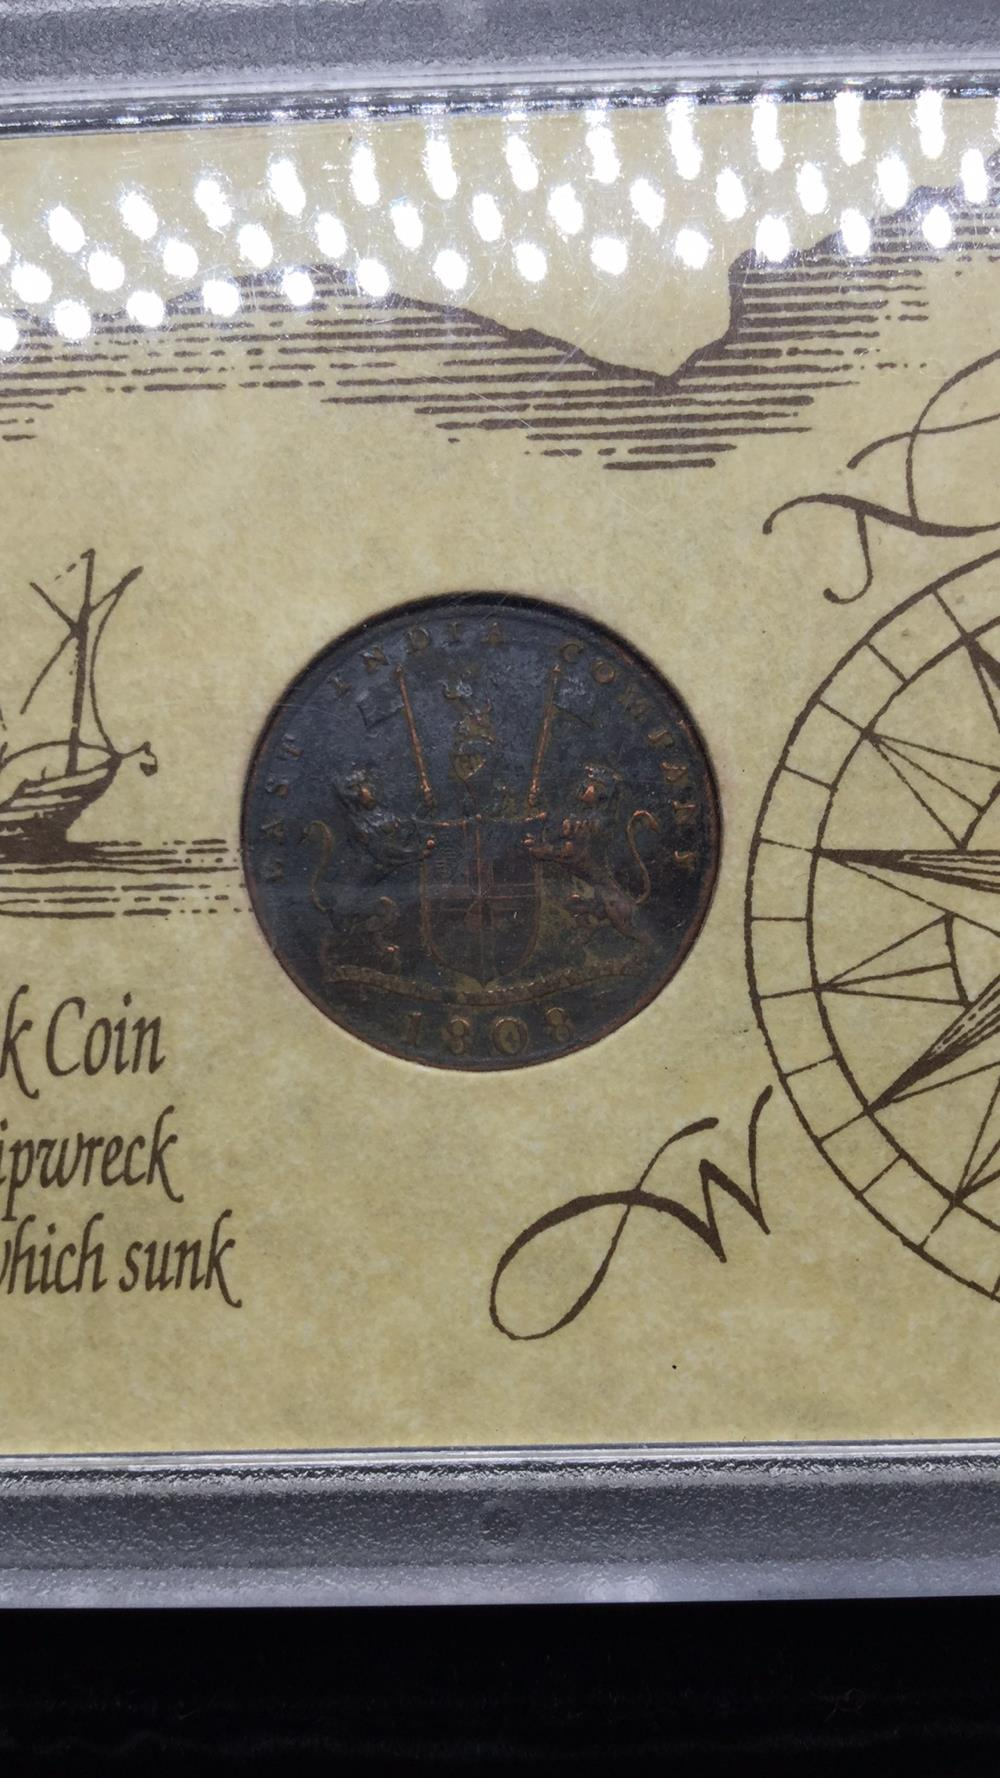 186 year old shipwreck coin